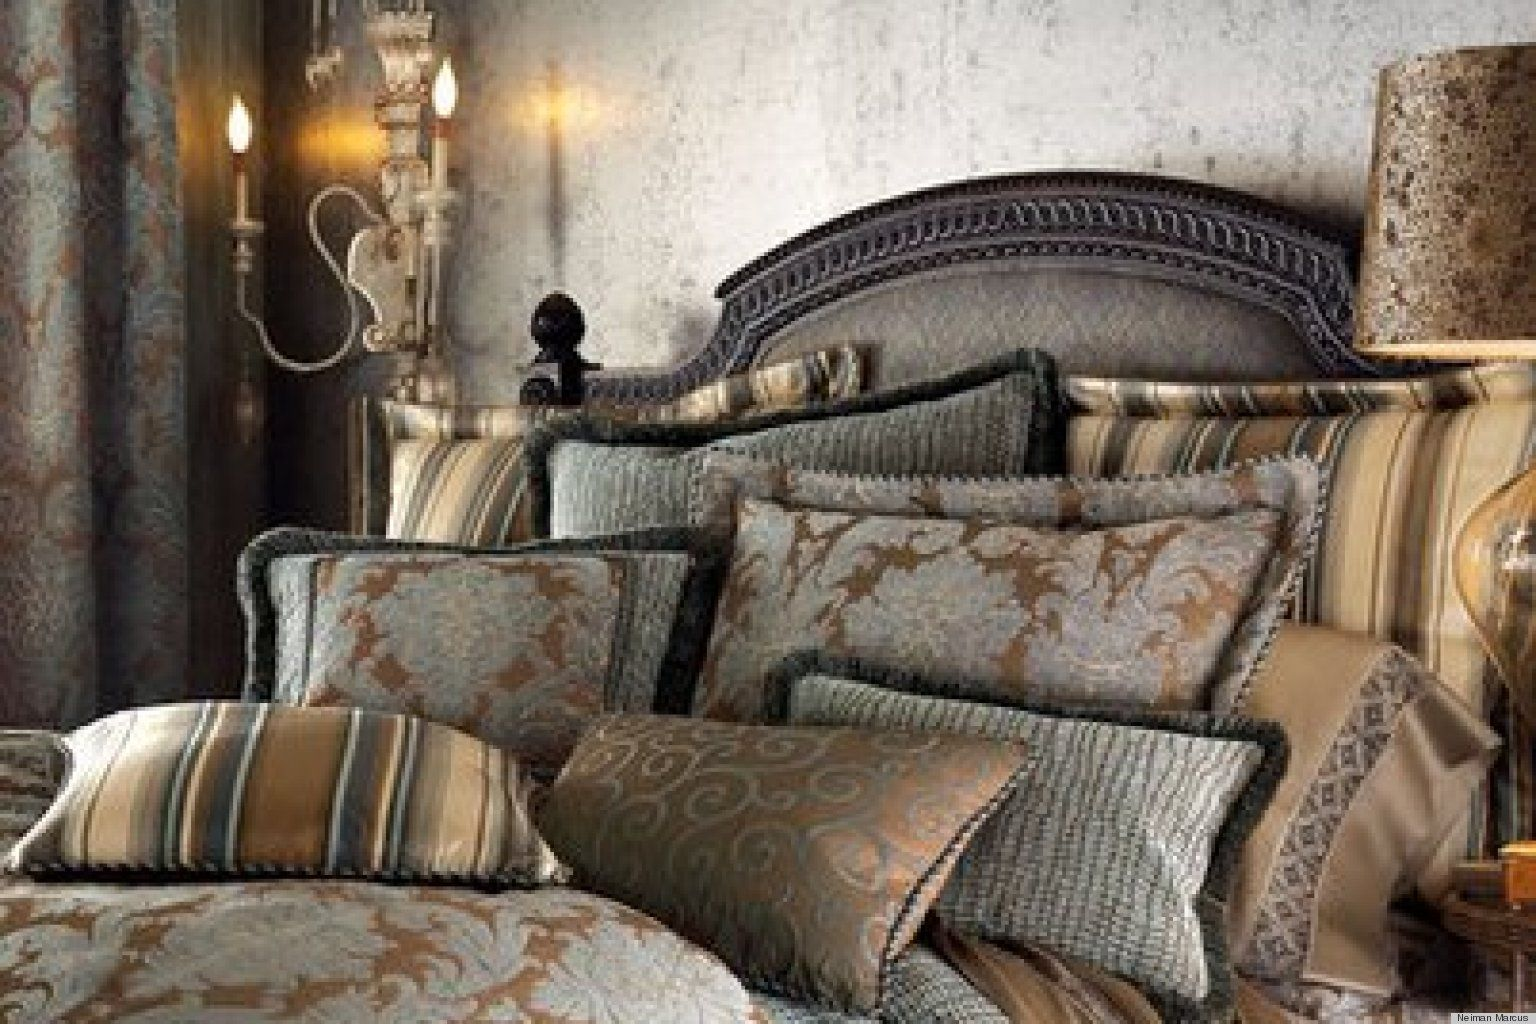 game of thrones themed bedroom - Google Search | House | Pinterest ...